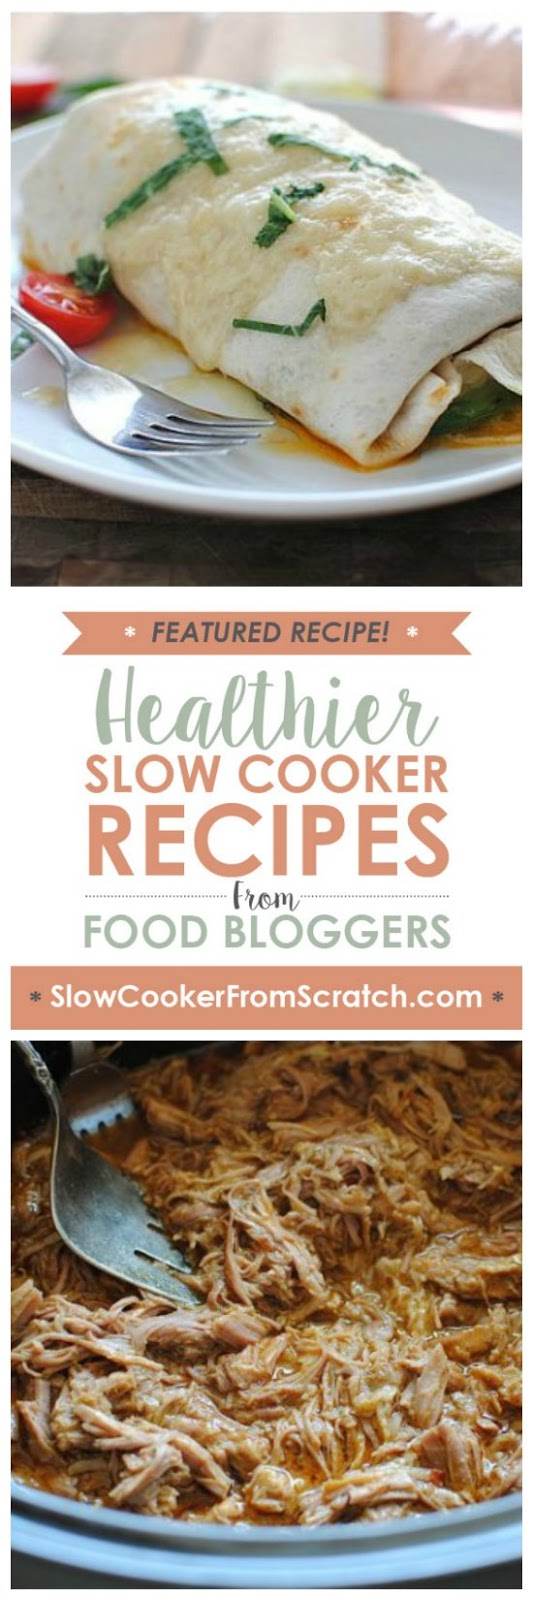 Slow Cooker Pork Burritos from Bev Cooks featured on SlowCookerFromScratch.com